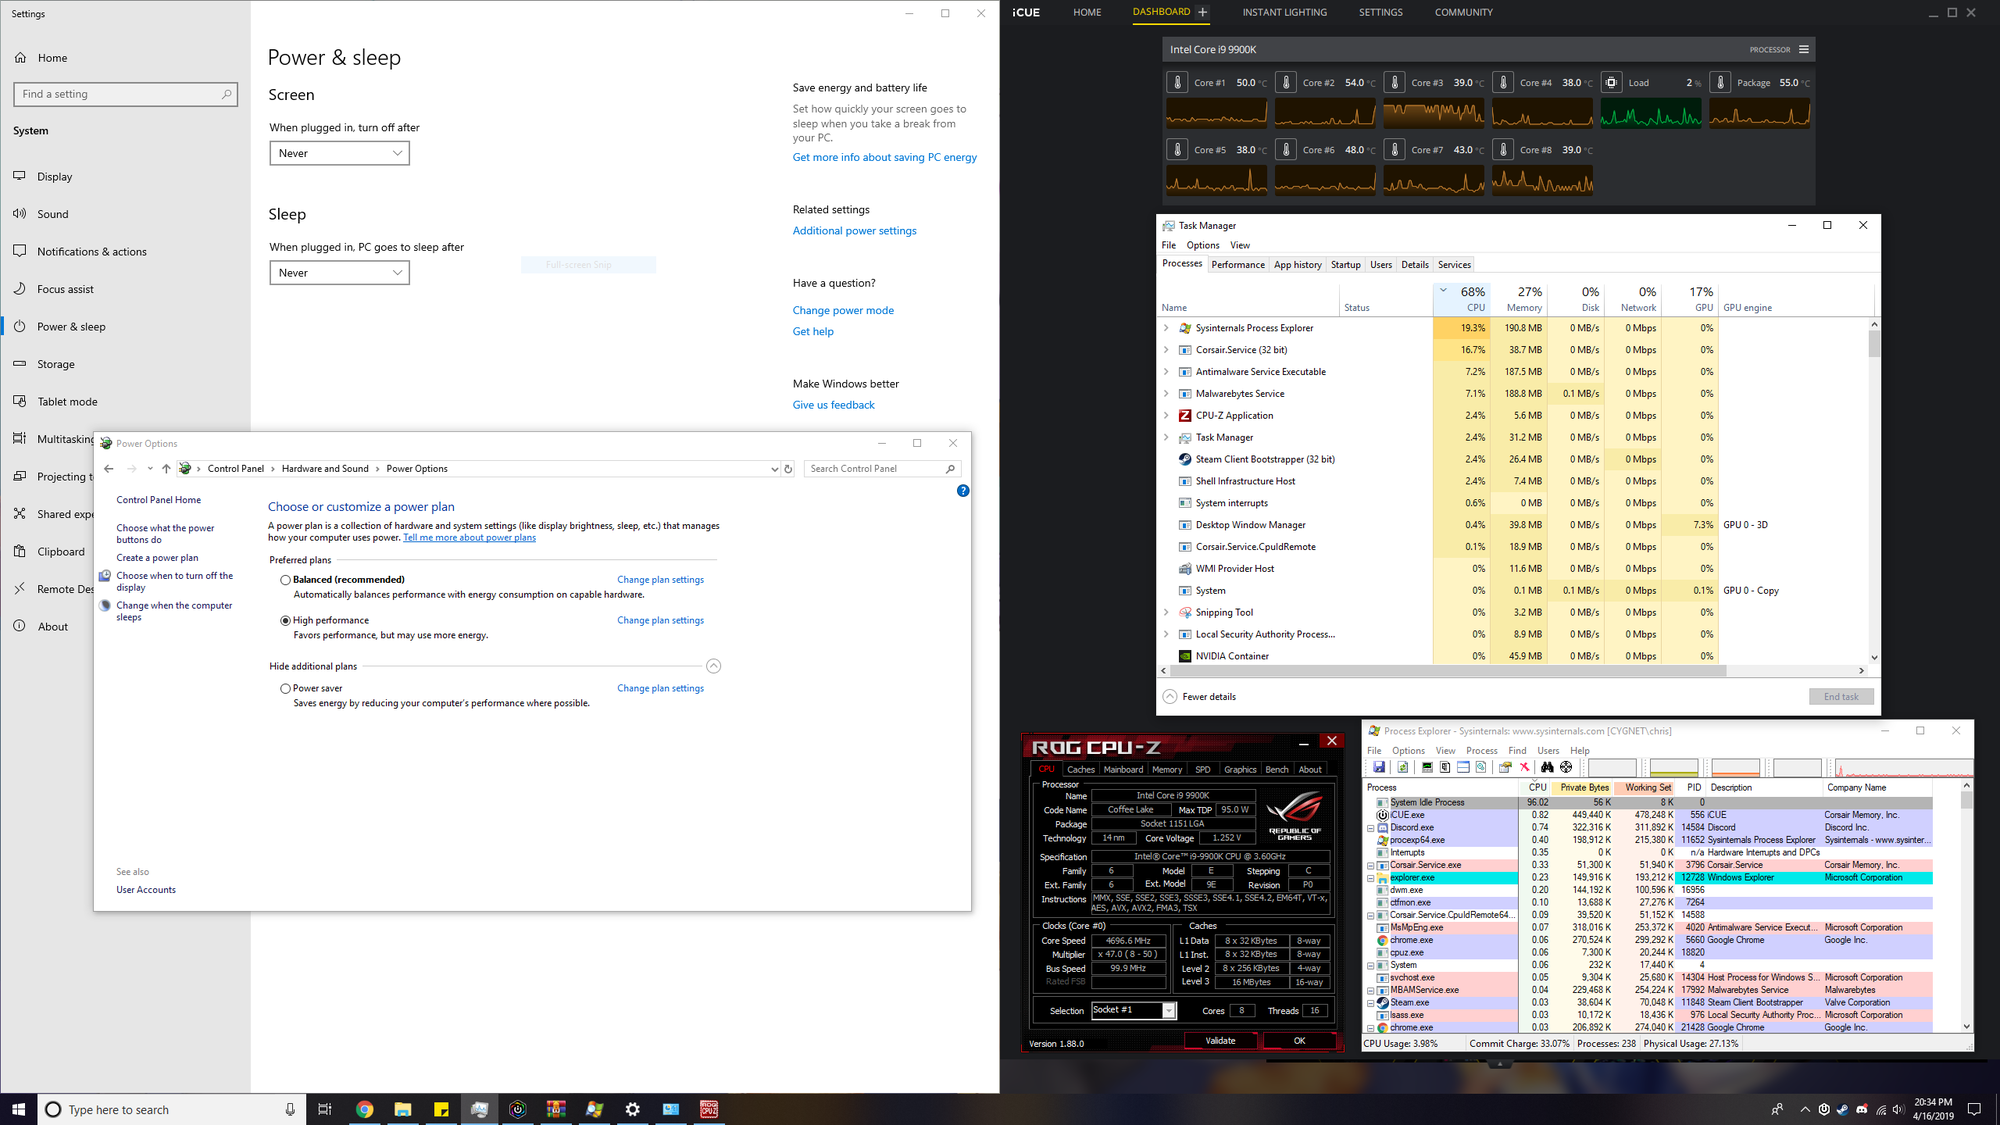 Task manager showing incorrect CPU clock and memory stats 1f279241-0d95-4c1e-9e4c-c2dd62540003?upload=true.png